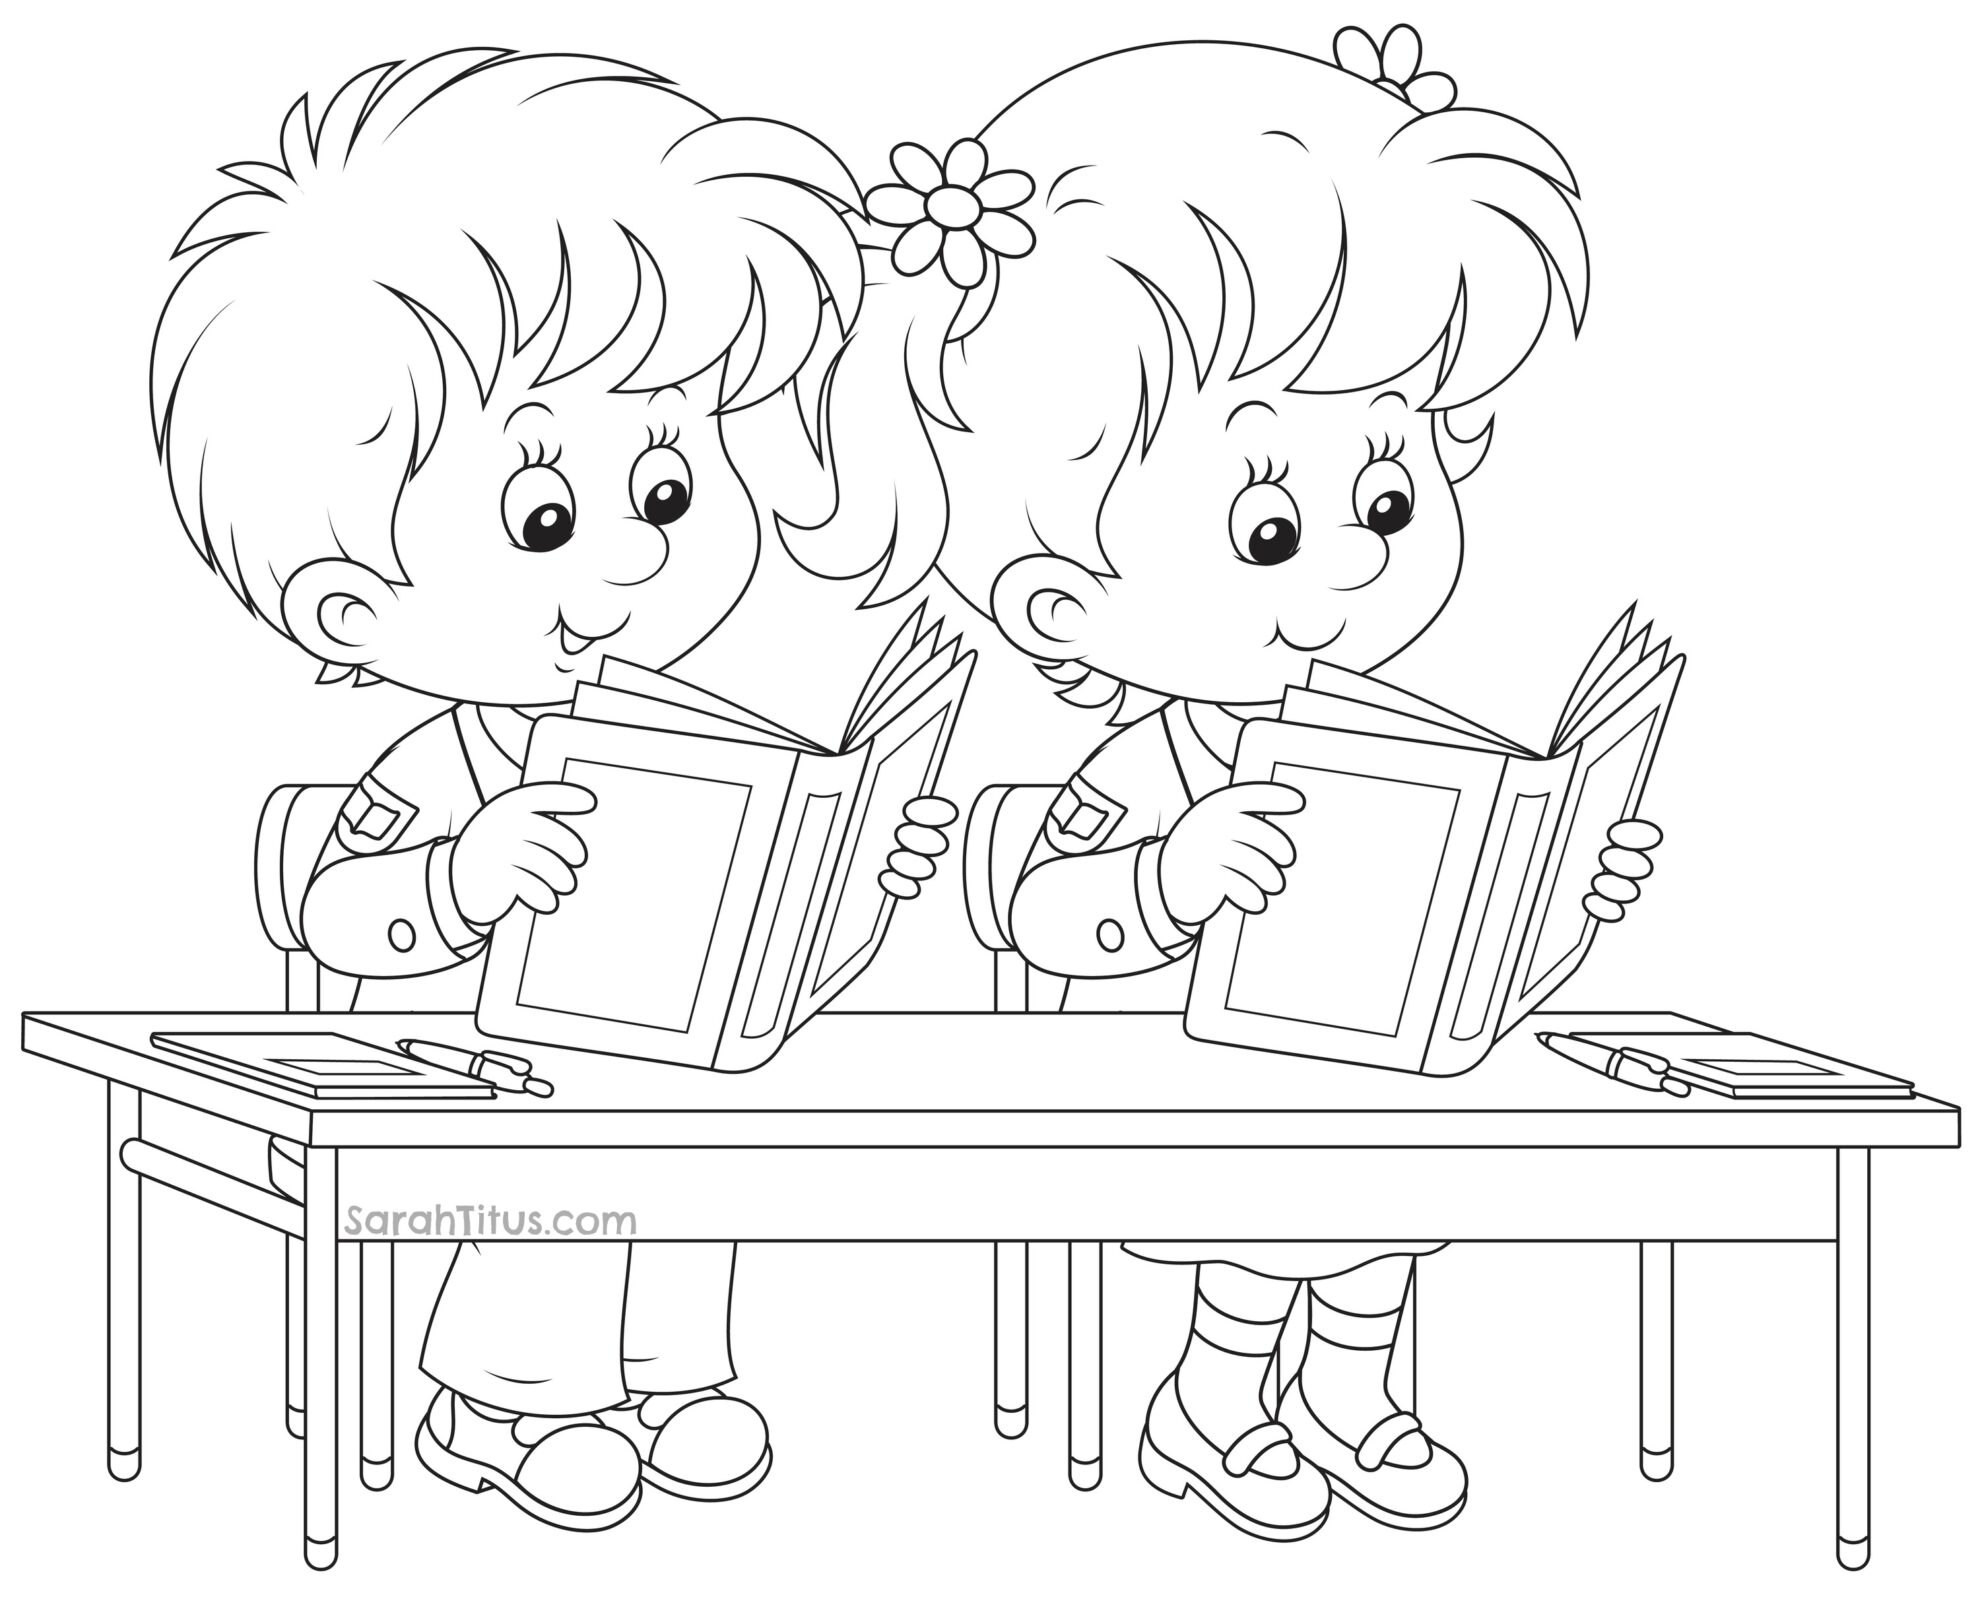 Back to school coloring pages sarah titus Coloring book for kinder